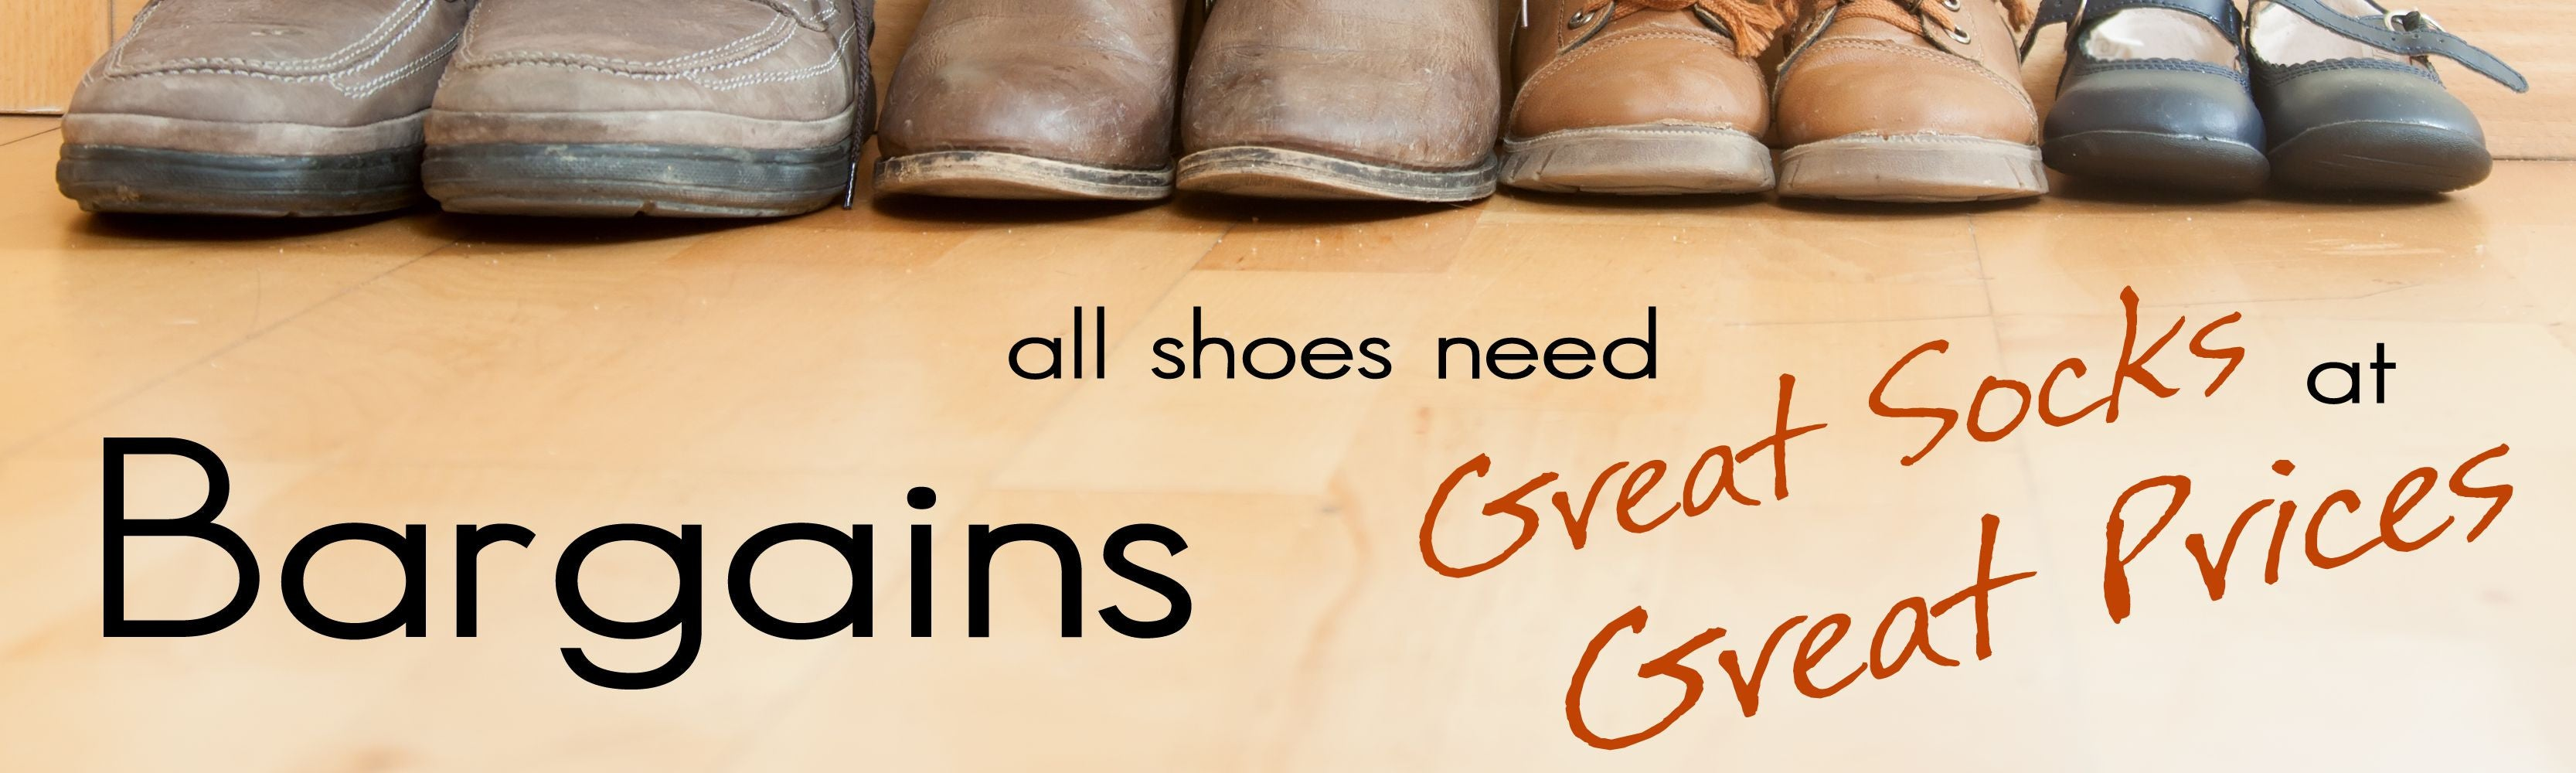 All Boots & Shoes nees Socks ... get them here at Bargain Prices